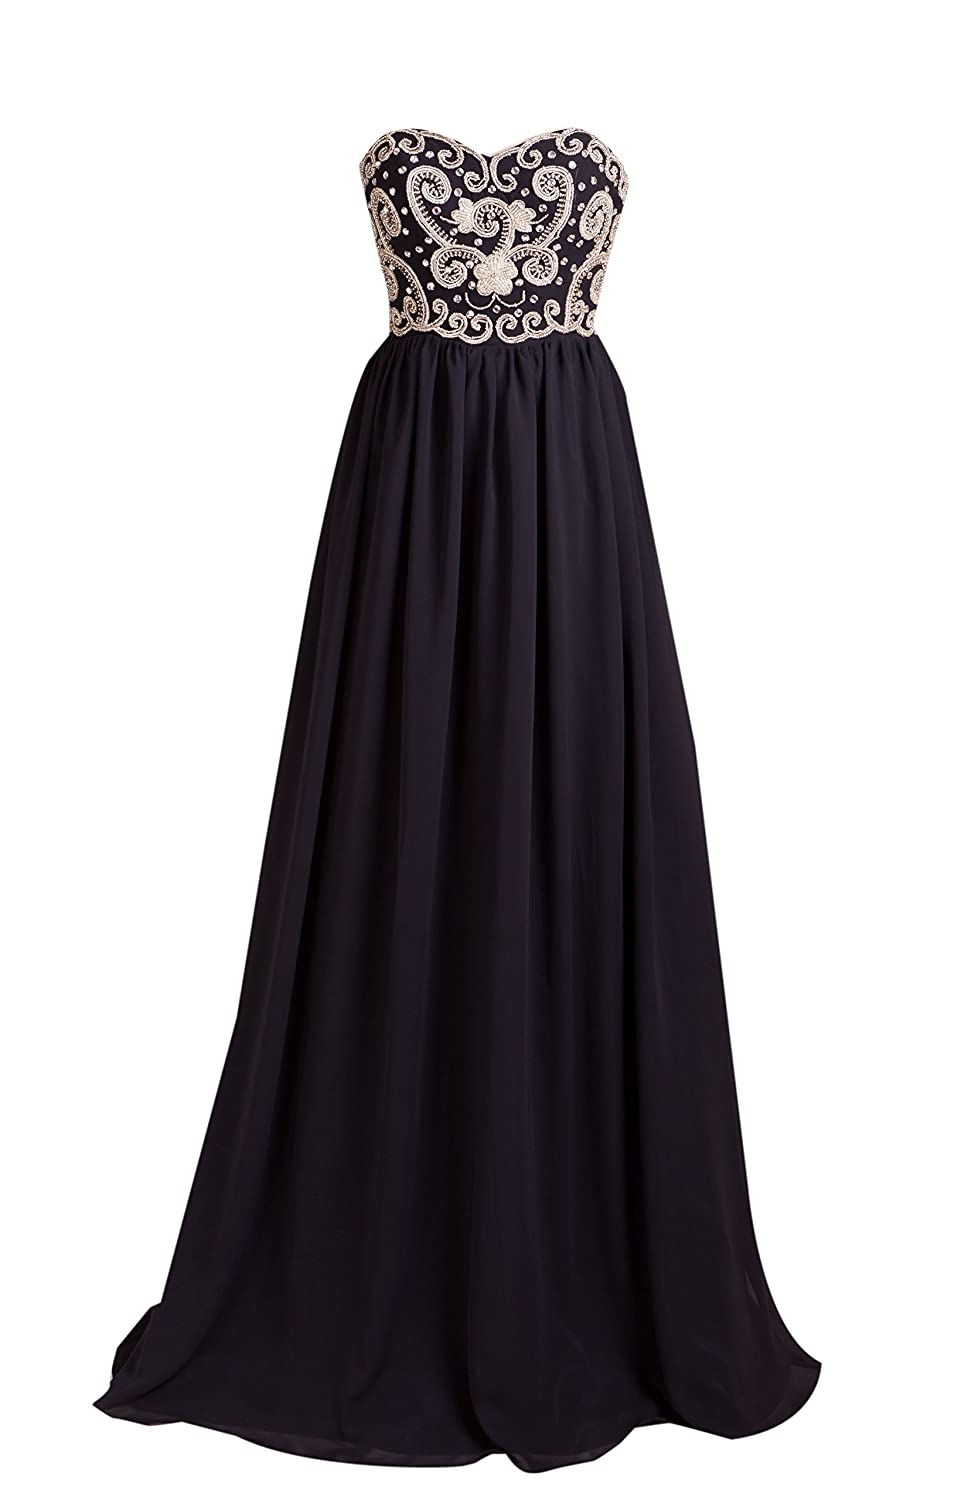 AngelDragon Strapless Beading Evening Prom Dress Long Chiffon Ball Gowns